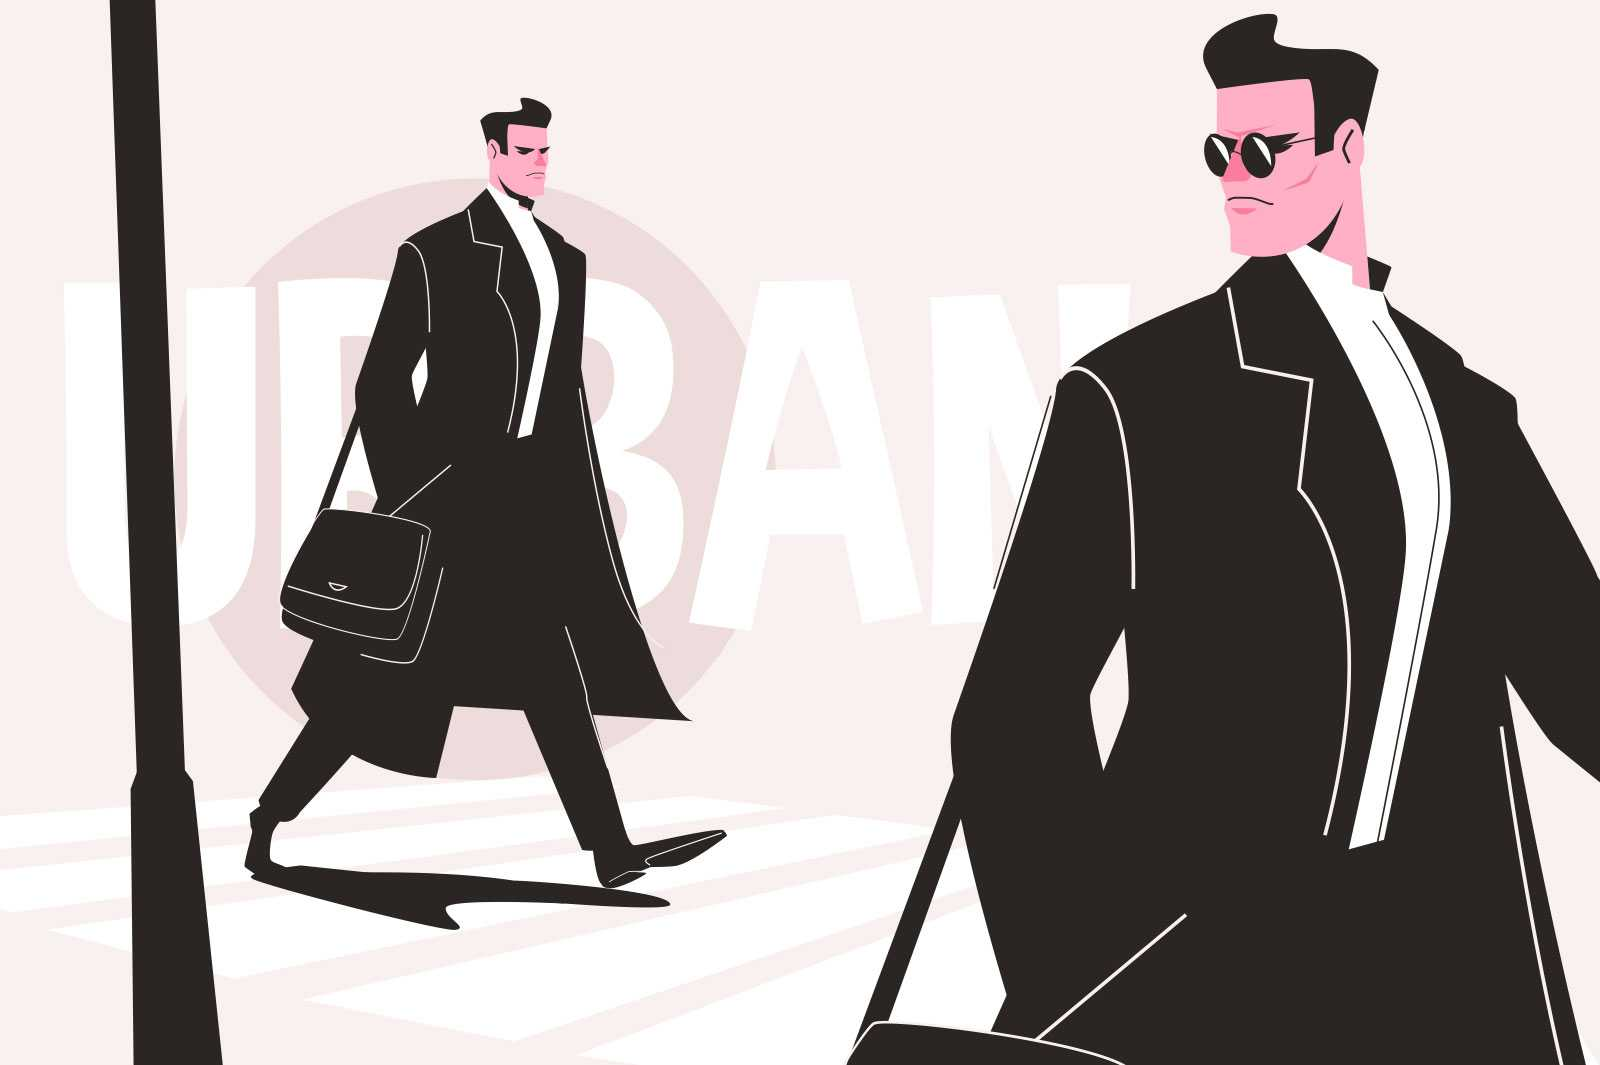 Urban man in raincoat vector illustration. Serious person dressed in total black flat style. Fashionable guy walk on street. Fashion and trend concept. Isolated on pink background